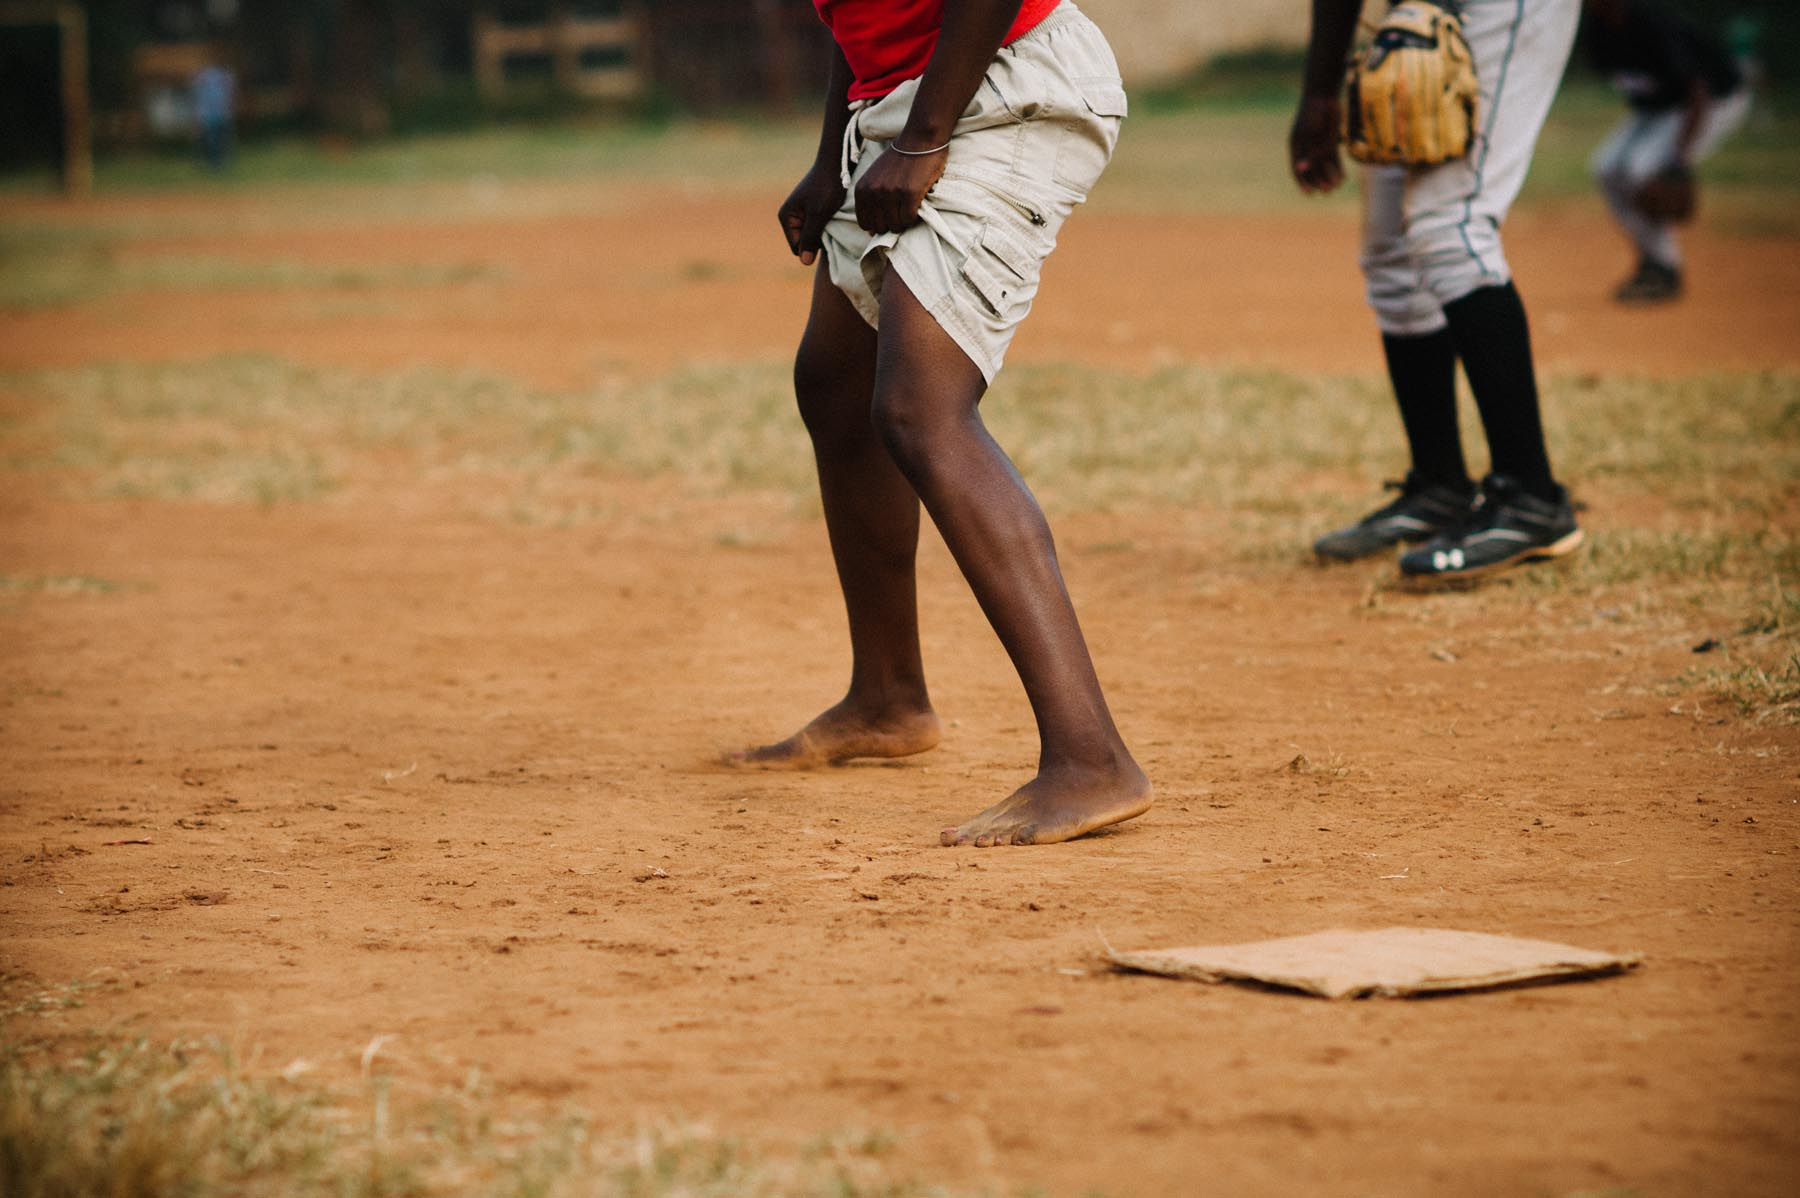 HKP-UgandaBaseball-Day3-0024.jpg